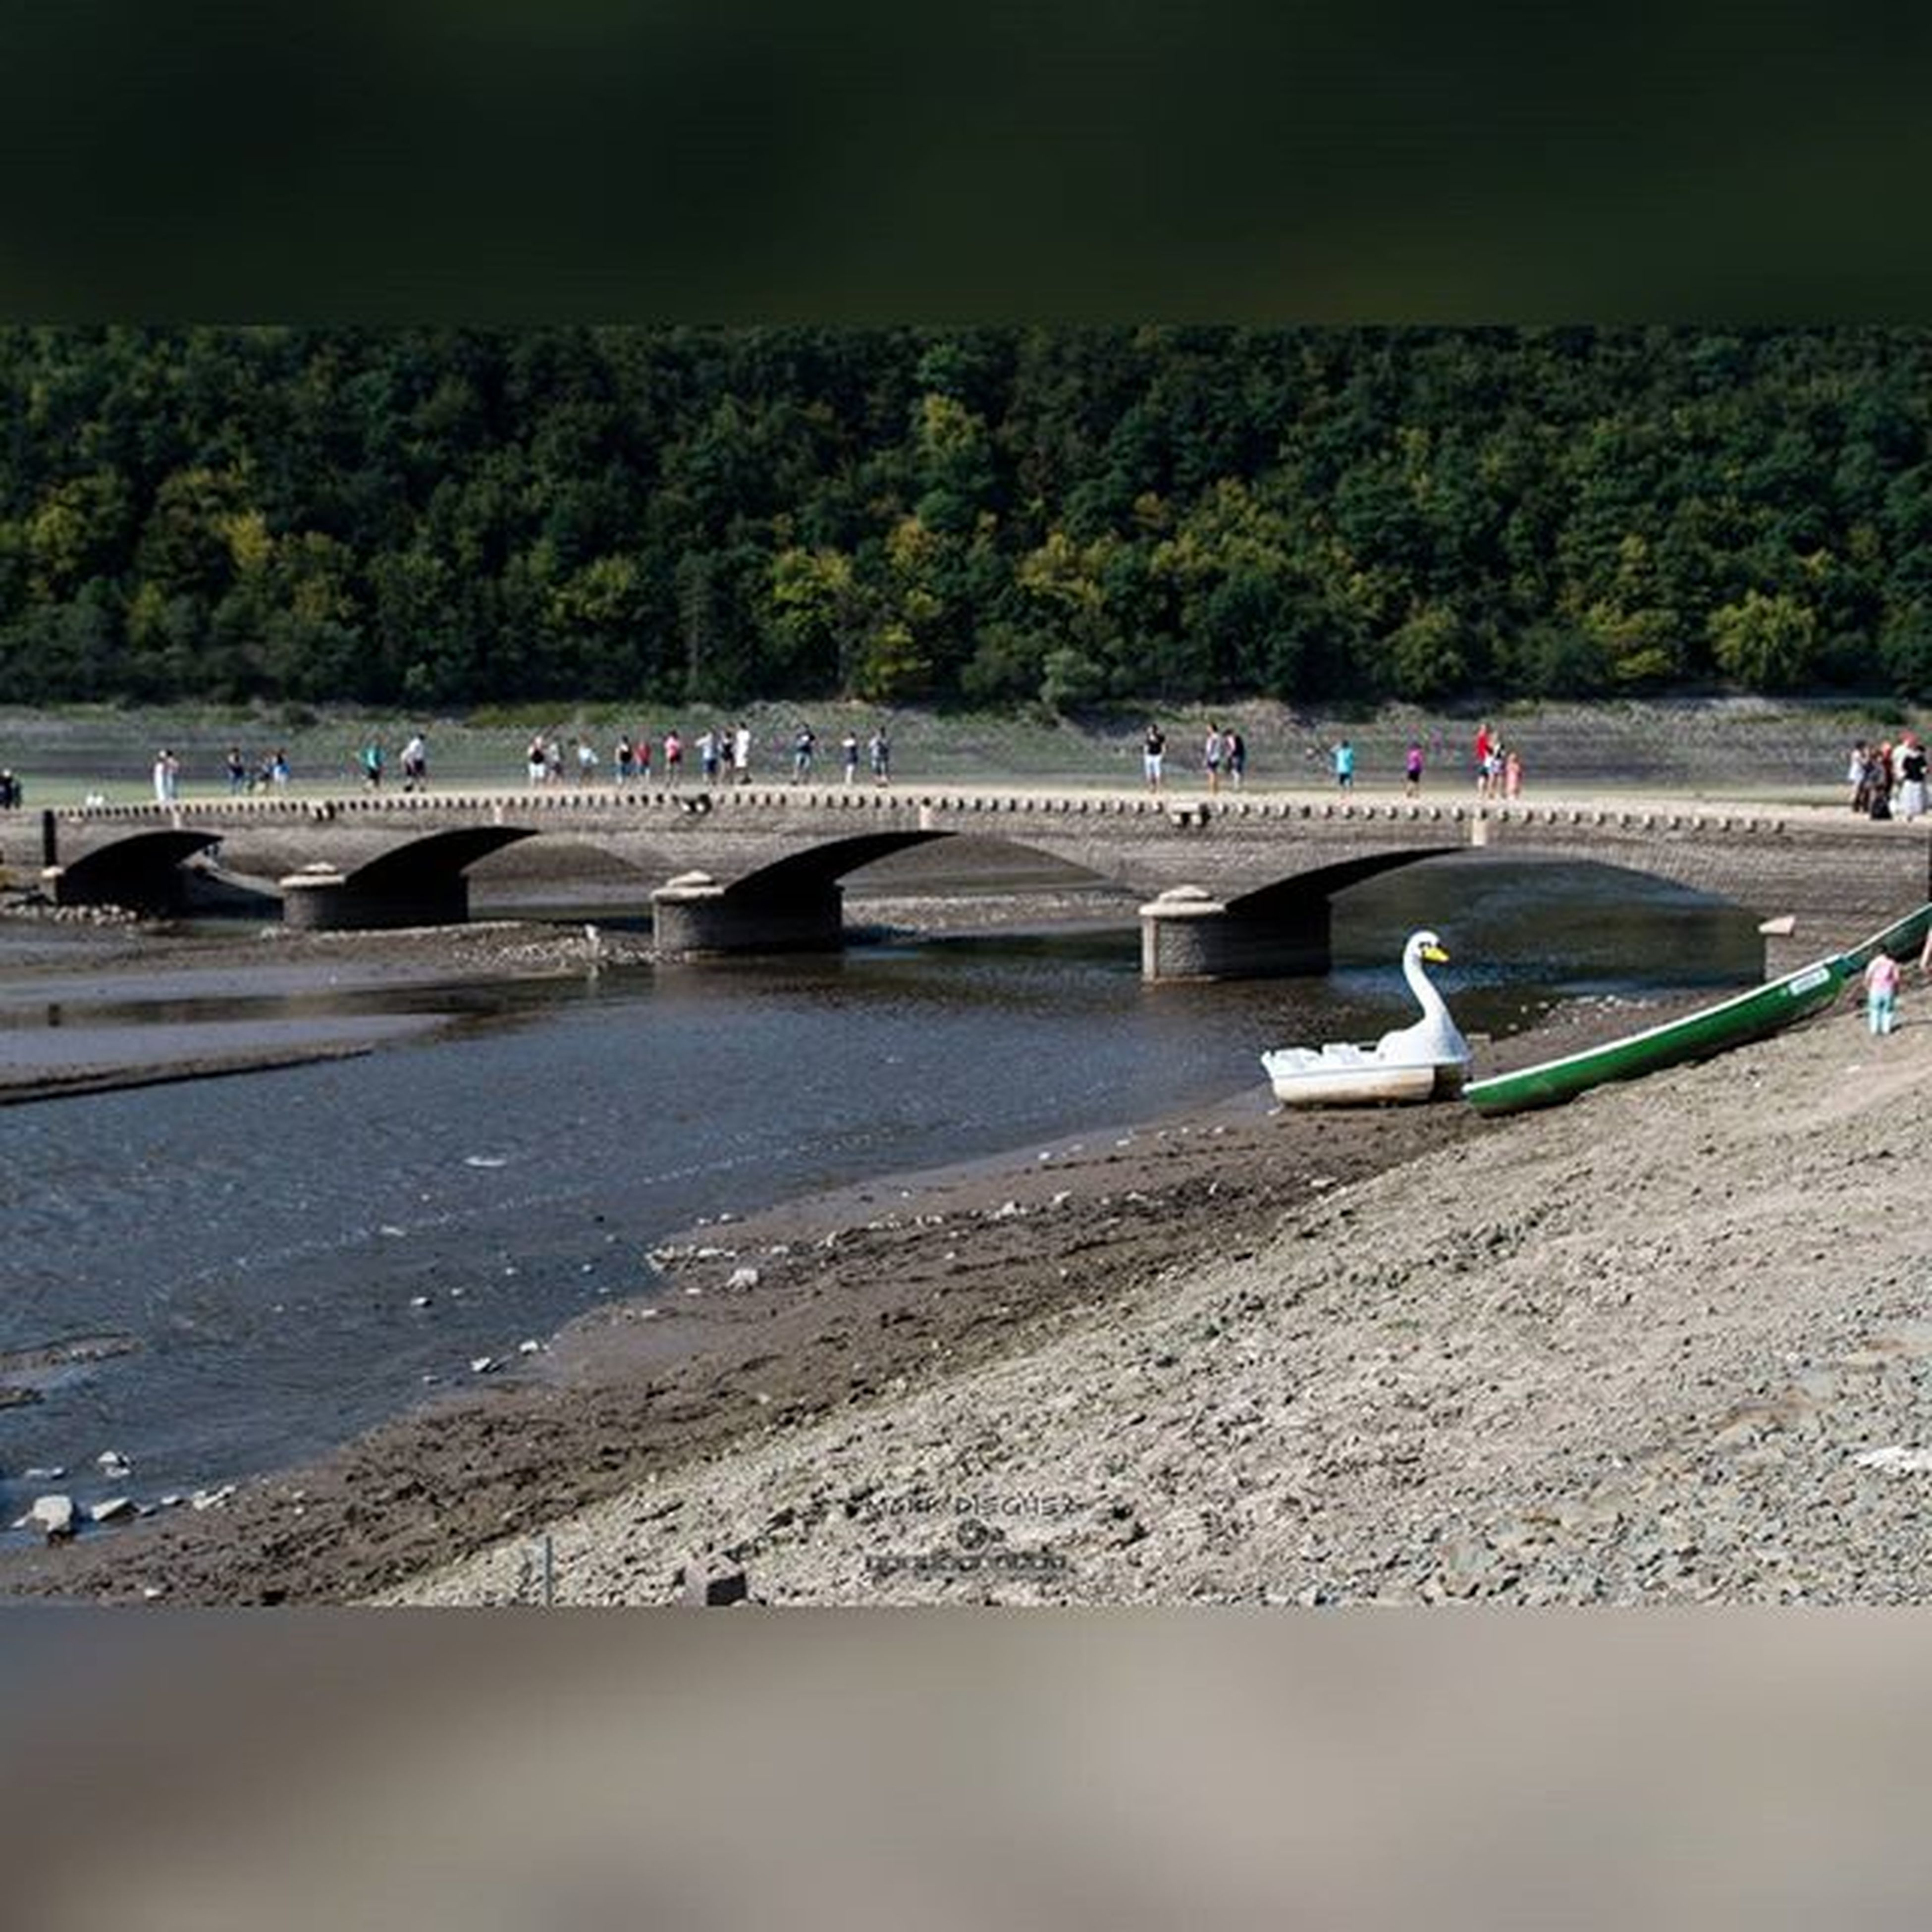 transportation, bridge - man made structure, connection, built structure, river, water, architecture, bridge, beach, mode of transport, tree, high angle view, road, city, incidental people, engineering, sand, outdoors, travel, nautical vessel